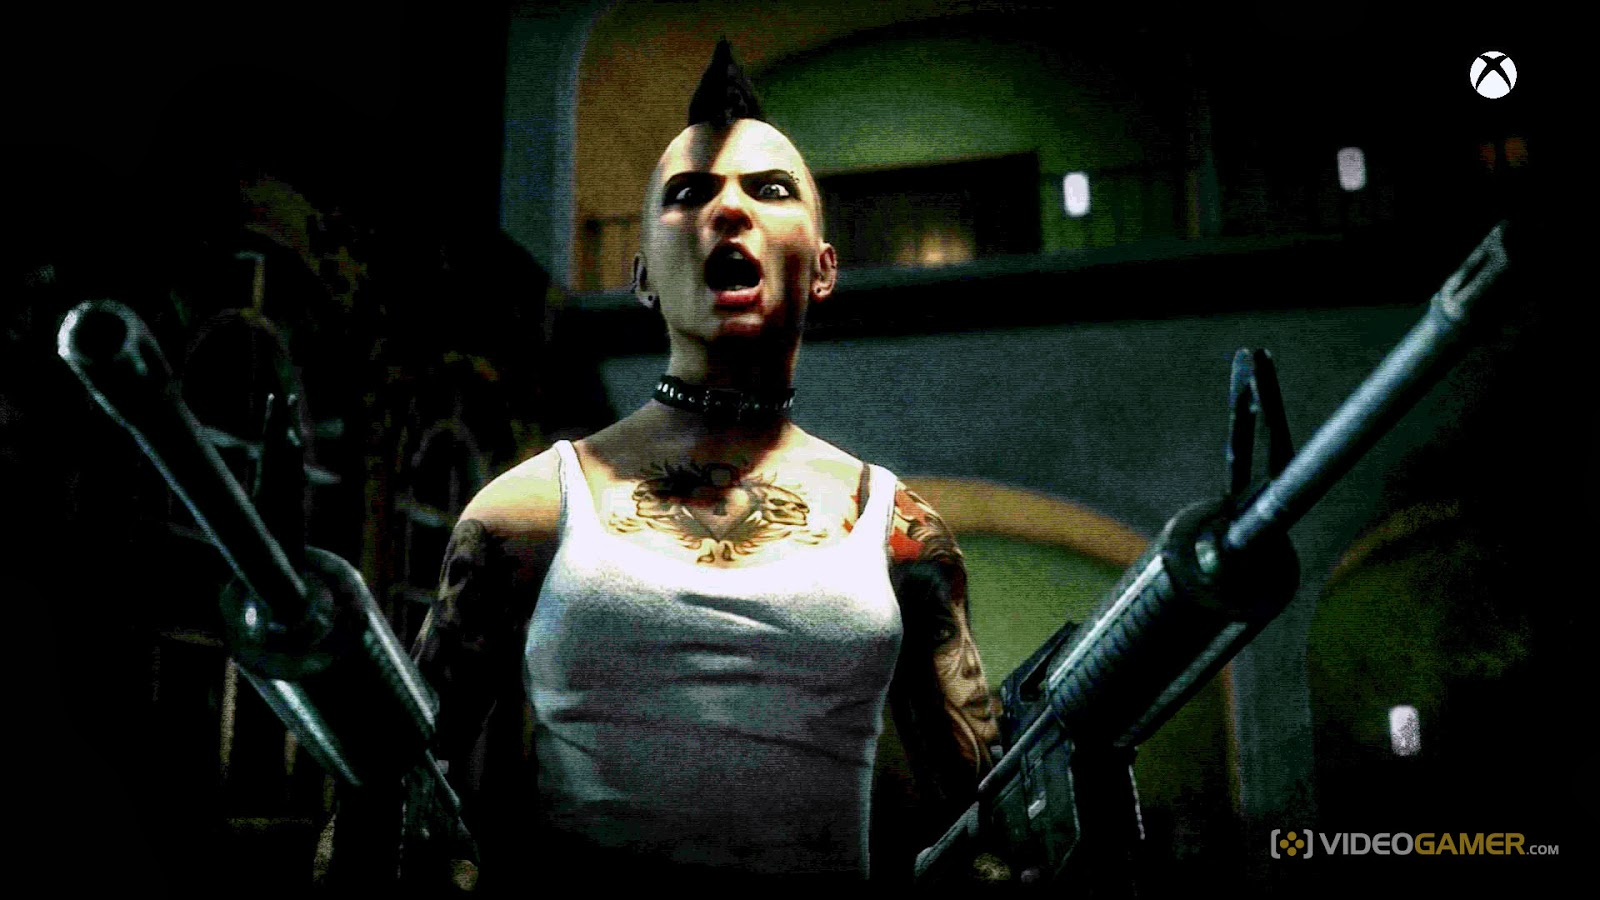 Dead rising 3 dlc characters revealed n2gaming n2g news gaming ps4